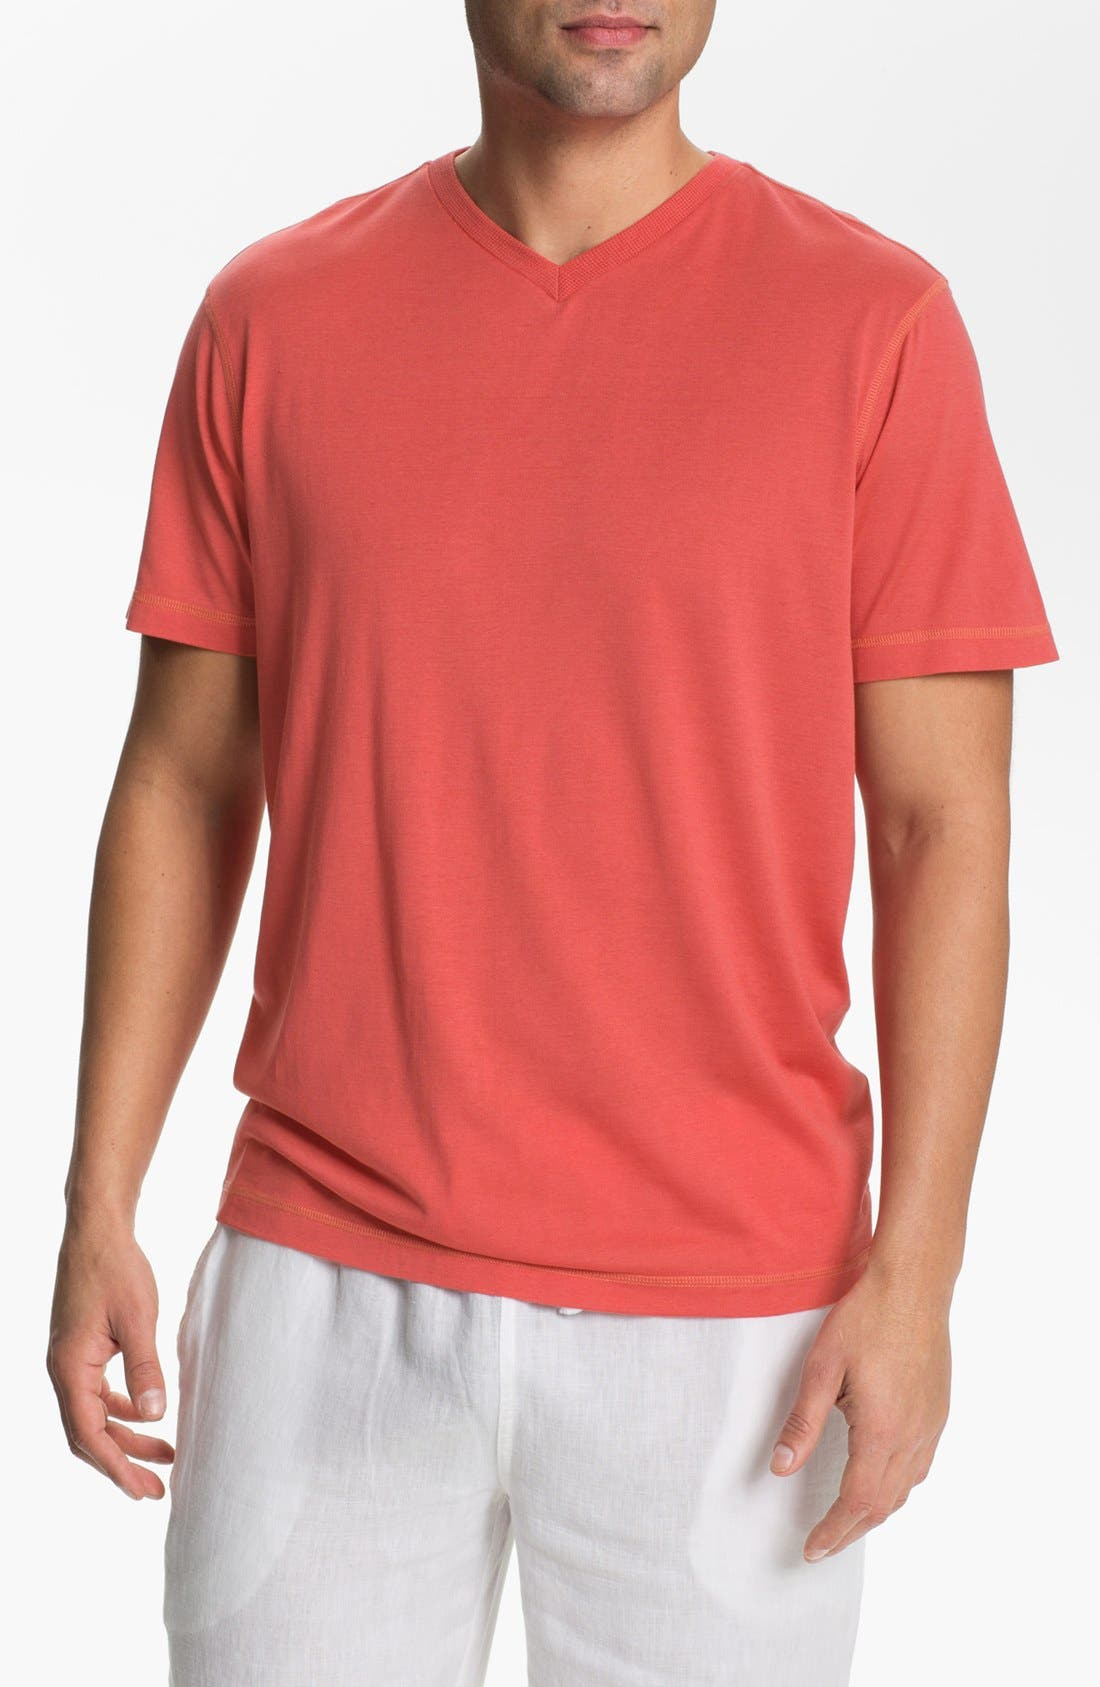 Alternate Image 1 Selected - Daniel Buchler V-Neck Silk Blend T-Shirt